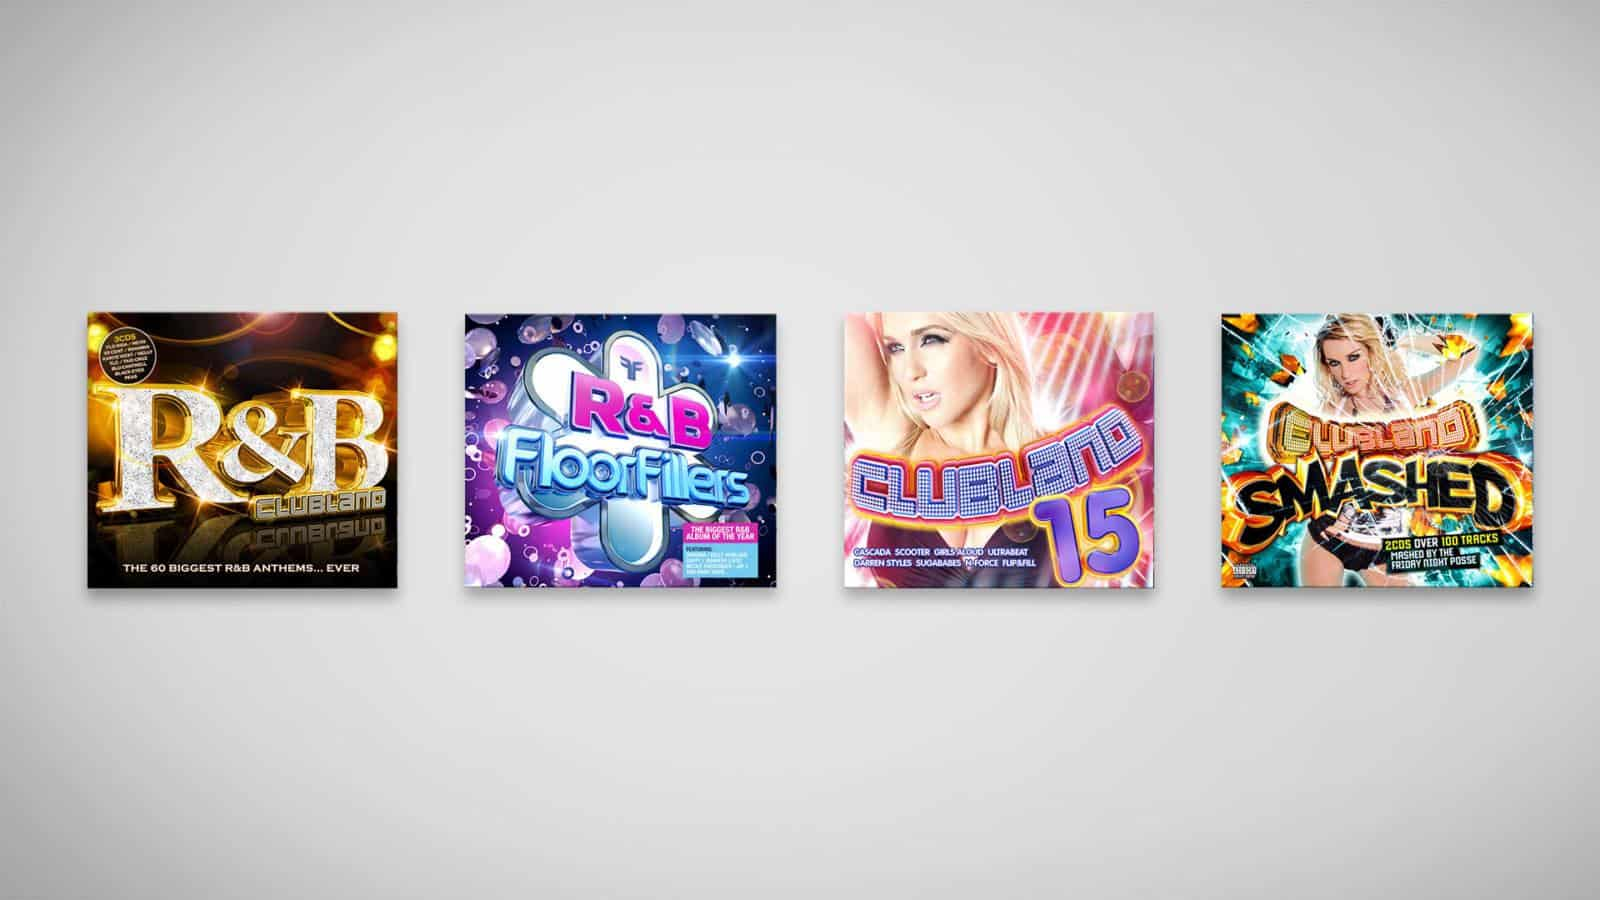 Clubland CD artwork